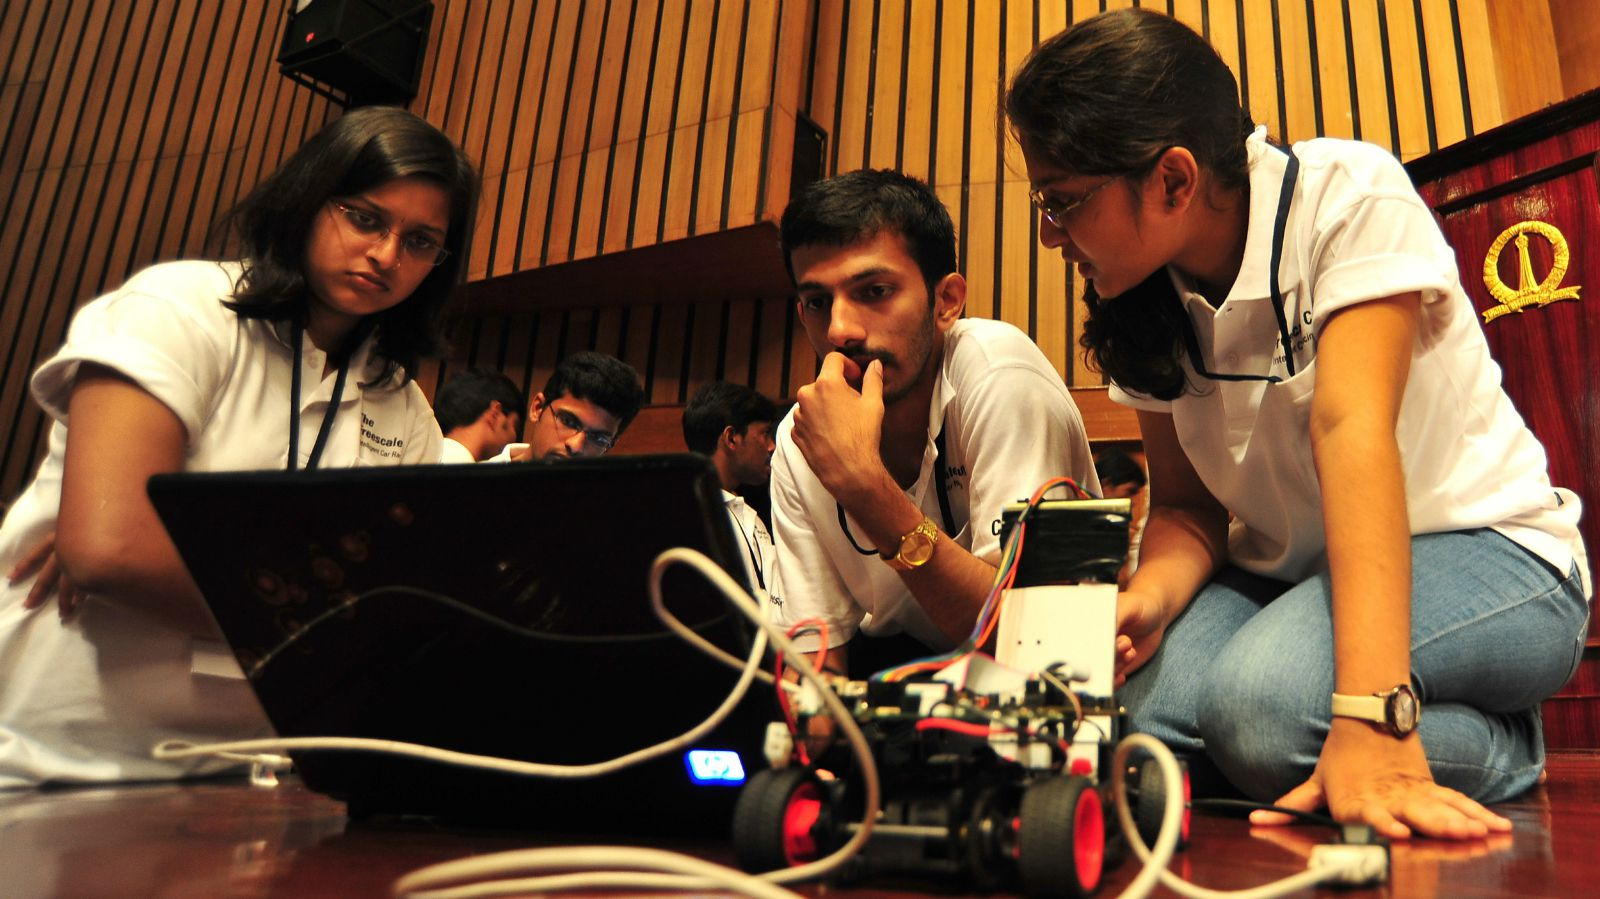 epa02925247 Engineering students from various colleges prepare their smart cars before taking part in the 'unique intelligent car race' for engineering students organized by Freescale Semiconductor India in association with Centre for Electronic Design and Technology (CEDT) from the Indian Institute of Science, in the southern Indian city of Bangalore, on 19 September 2011. Around 127 teams from 35 engineering college students across India, take part in the Freescale's global imitative to promote innovation among engineering students and offer them a hands on opportunity to their engineering skills to test by creating microcontroller (MCU) programming that enables model cars to perform optimally under test conditions during the race. EPA/JAGADEESH NV